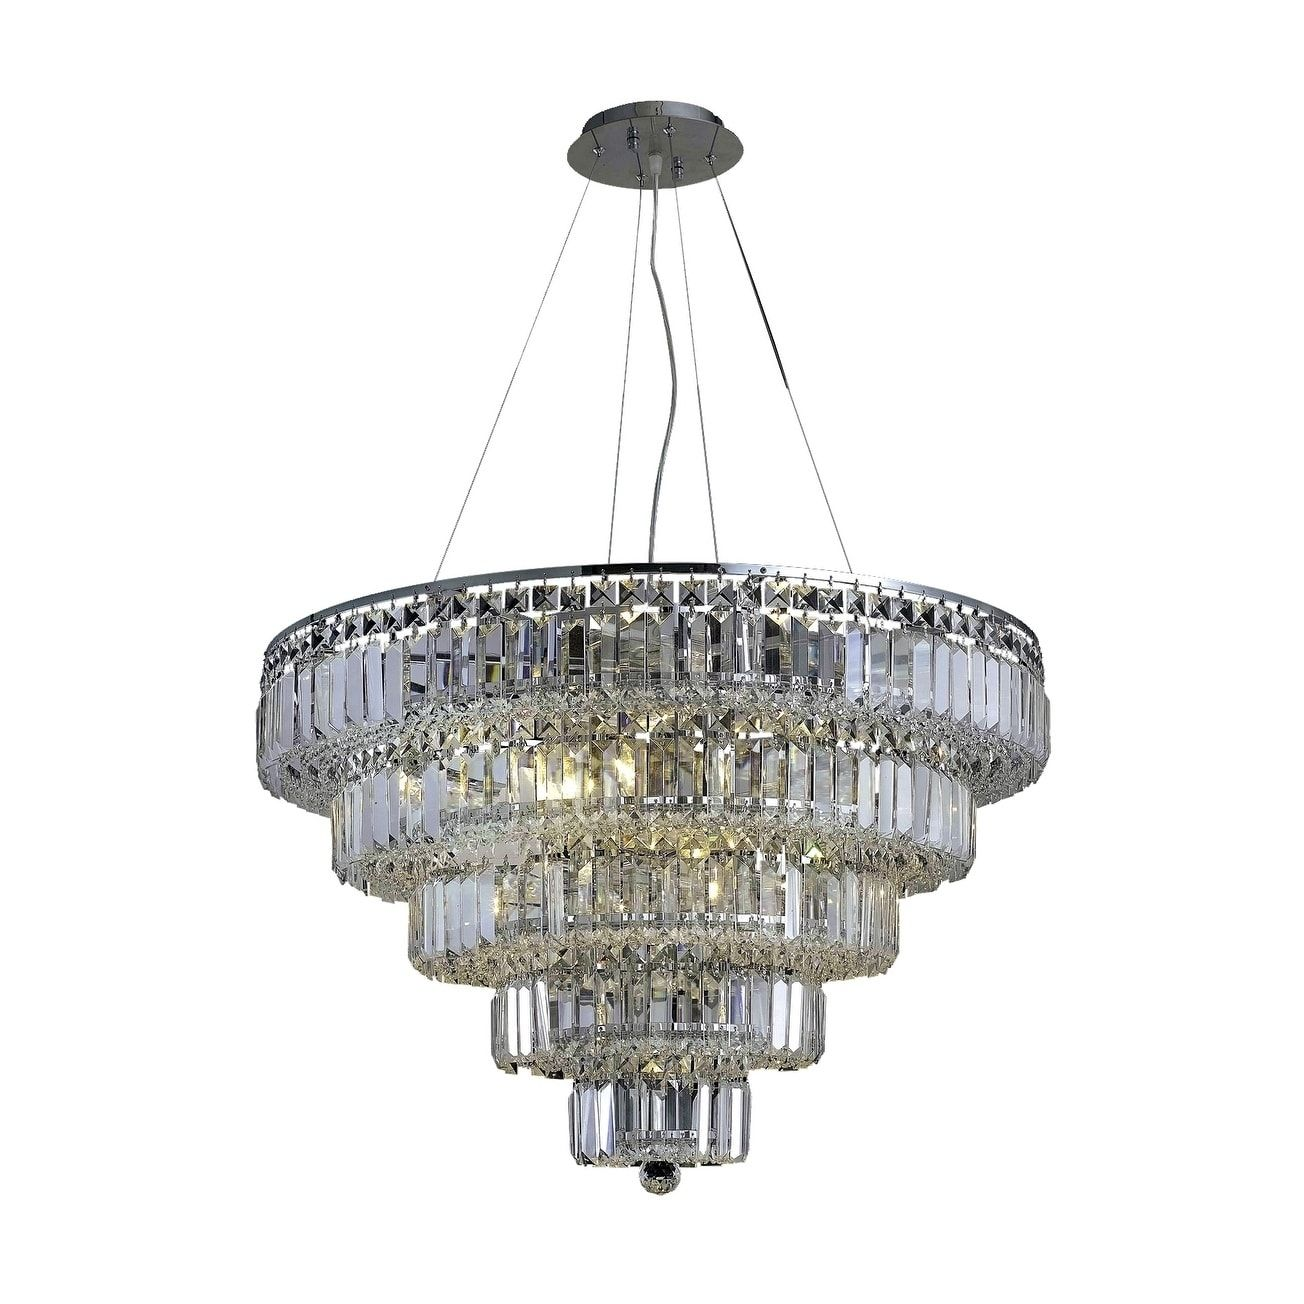 Hallway lighting no outlet  Elegant Lighting Maxime Light  in Chandelier Available in